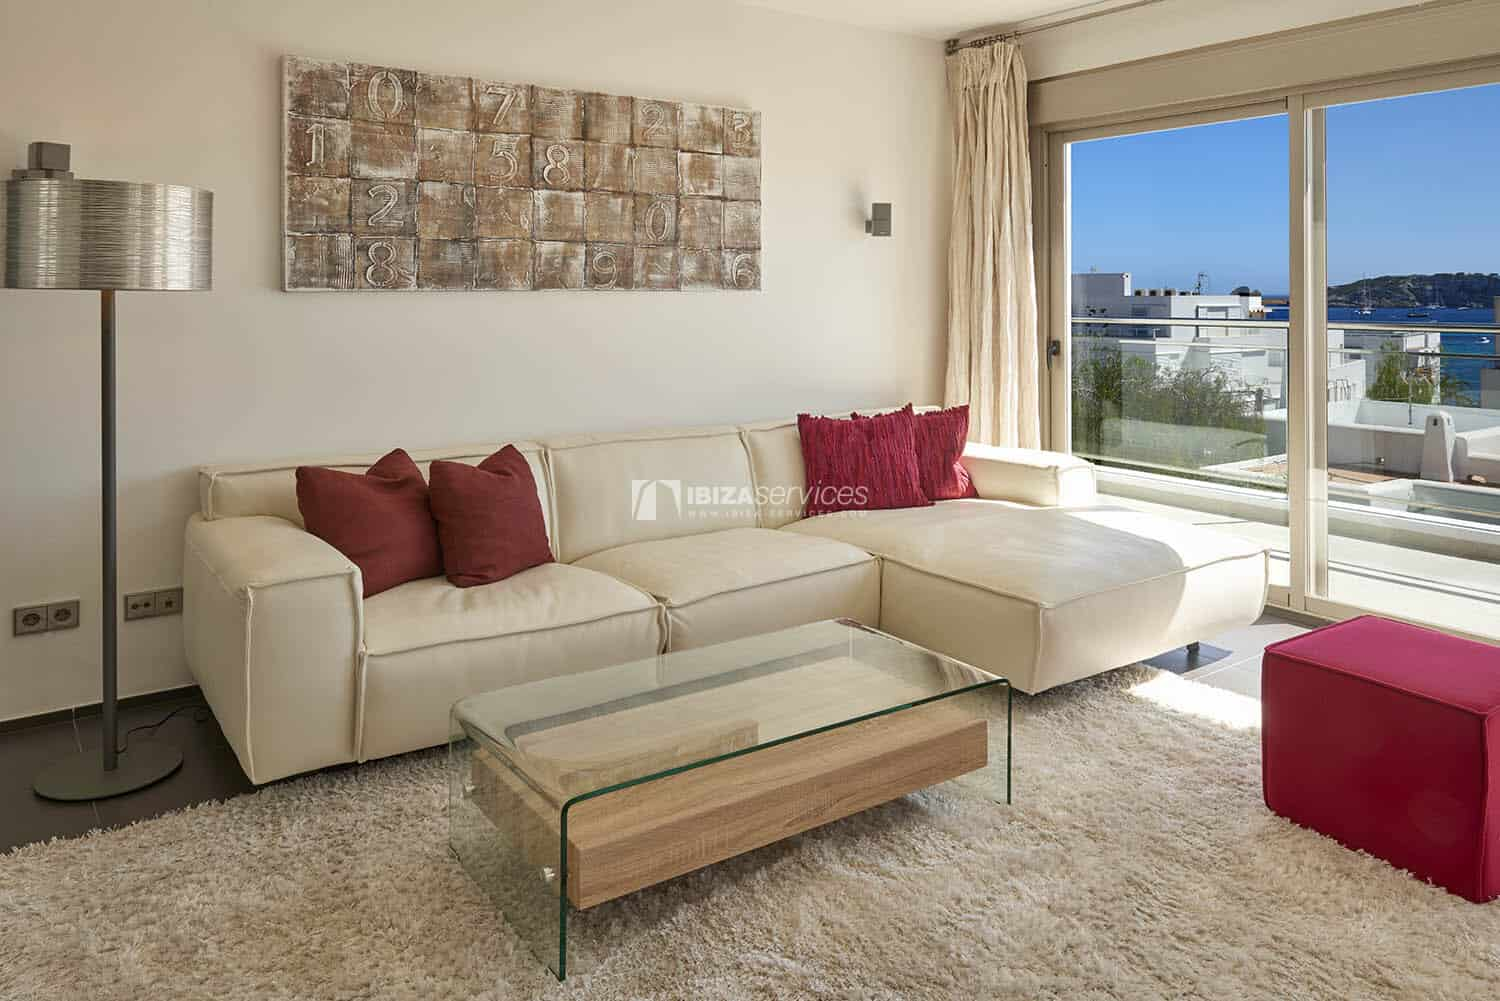 Luxury flat in Talamanca with great views and a large terrace